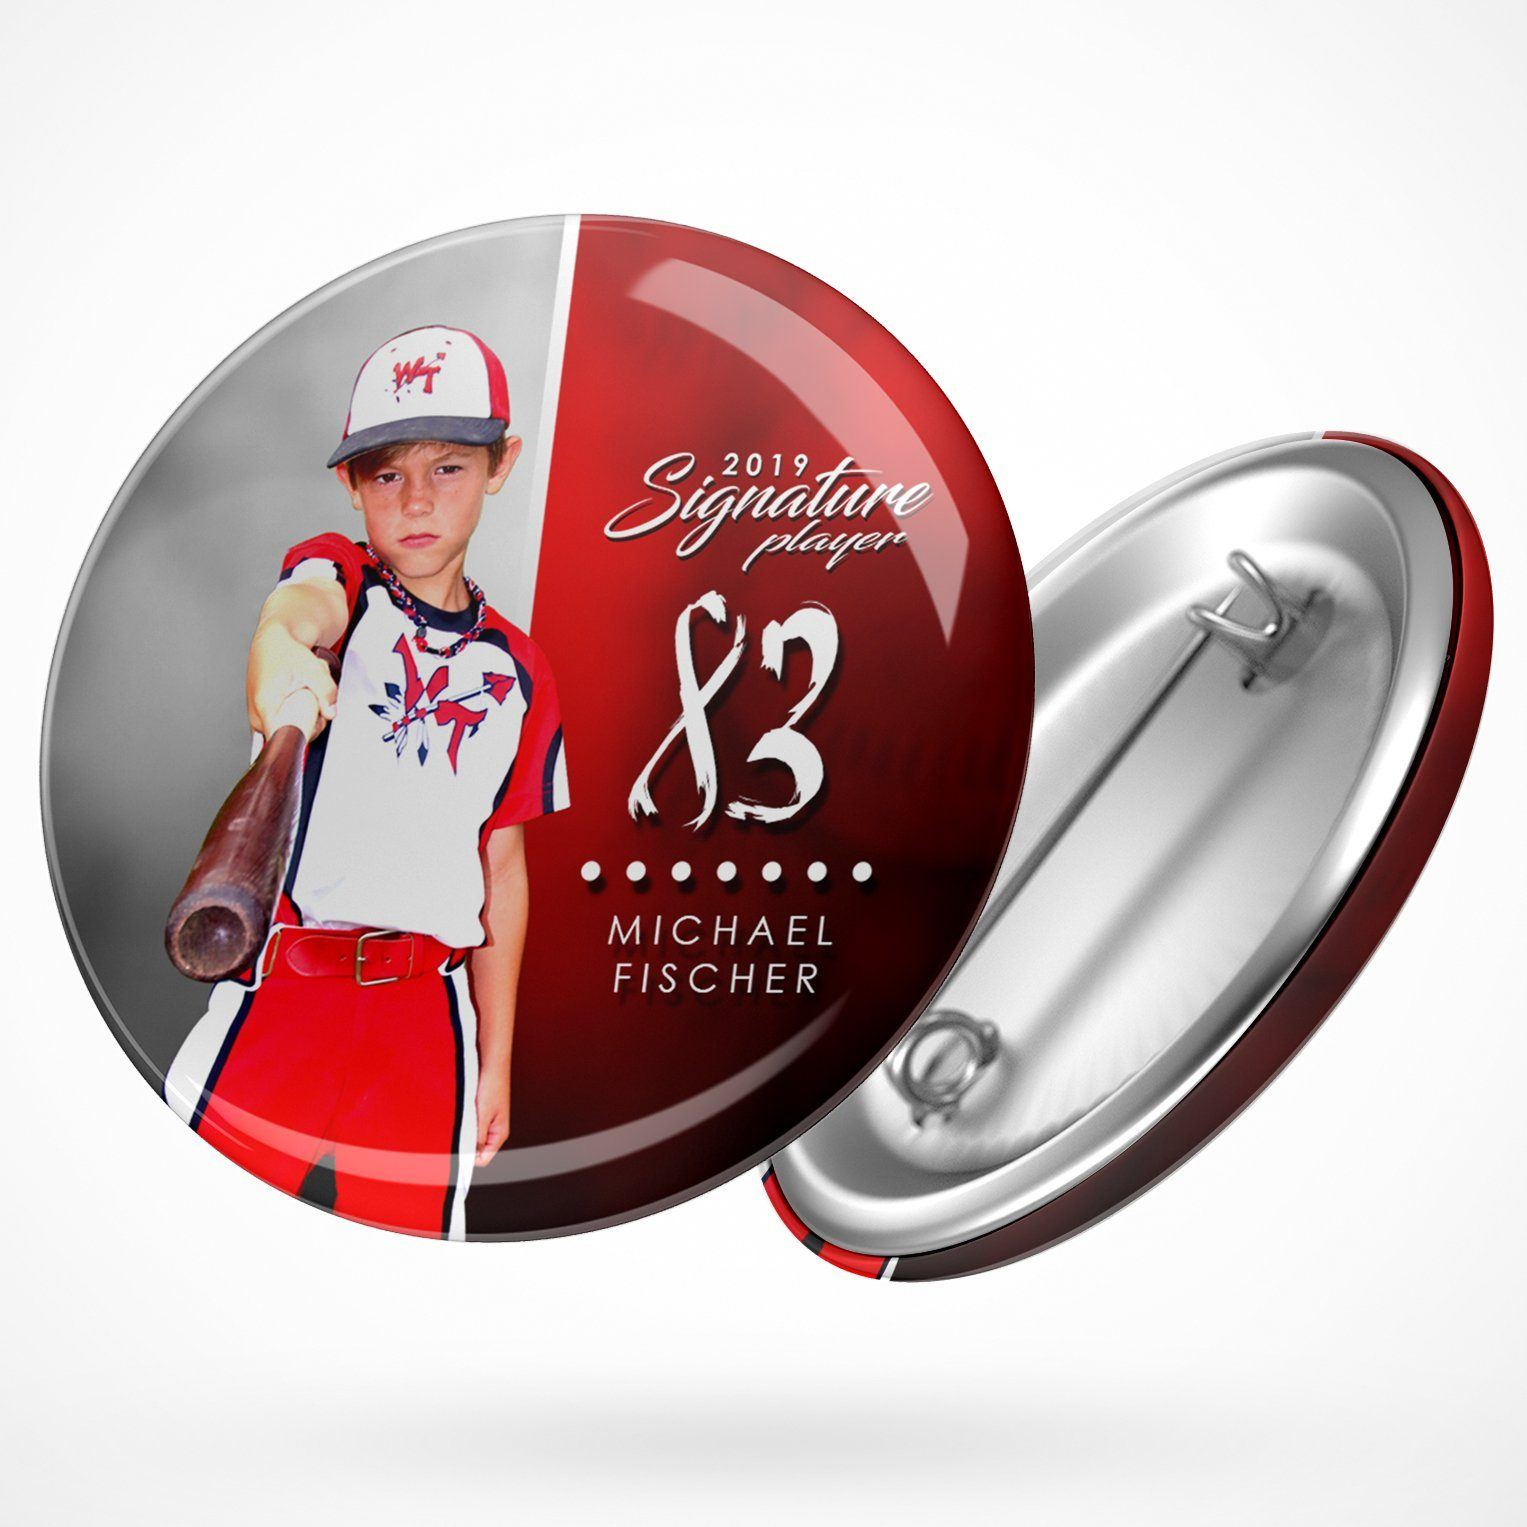 Signature Player - Baseball - V1 - Extraction Button Template-Photoshop Template - Photo Solutions